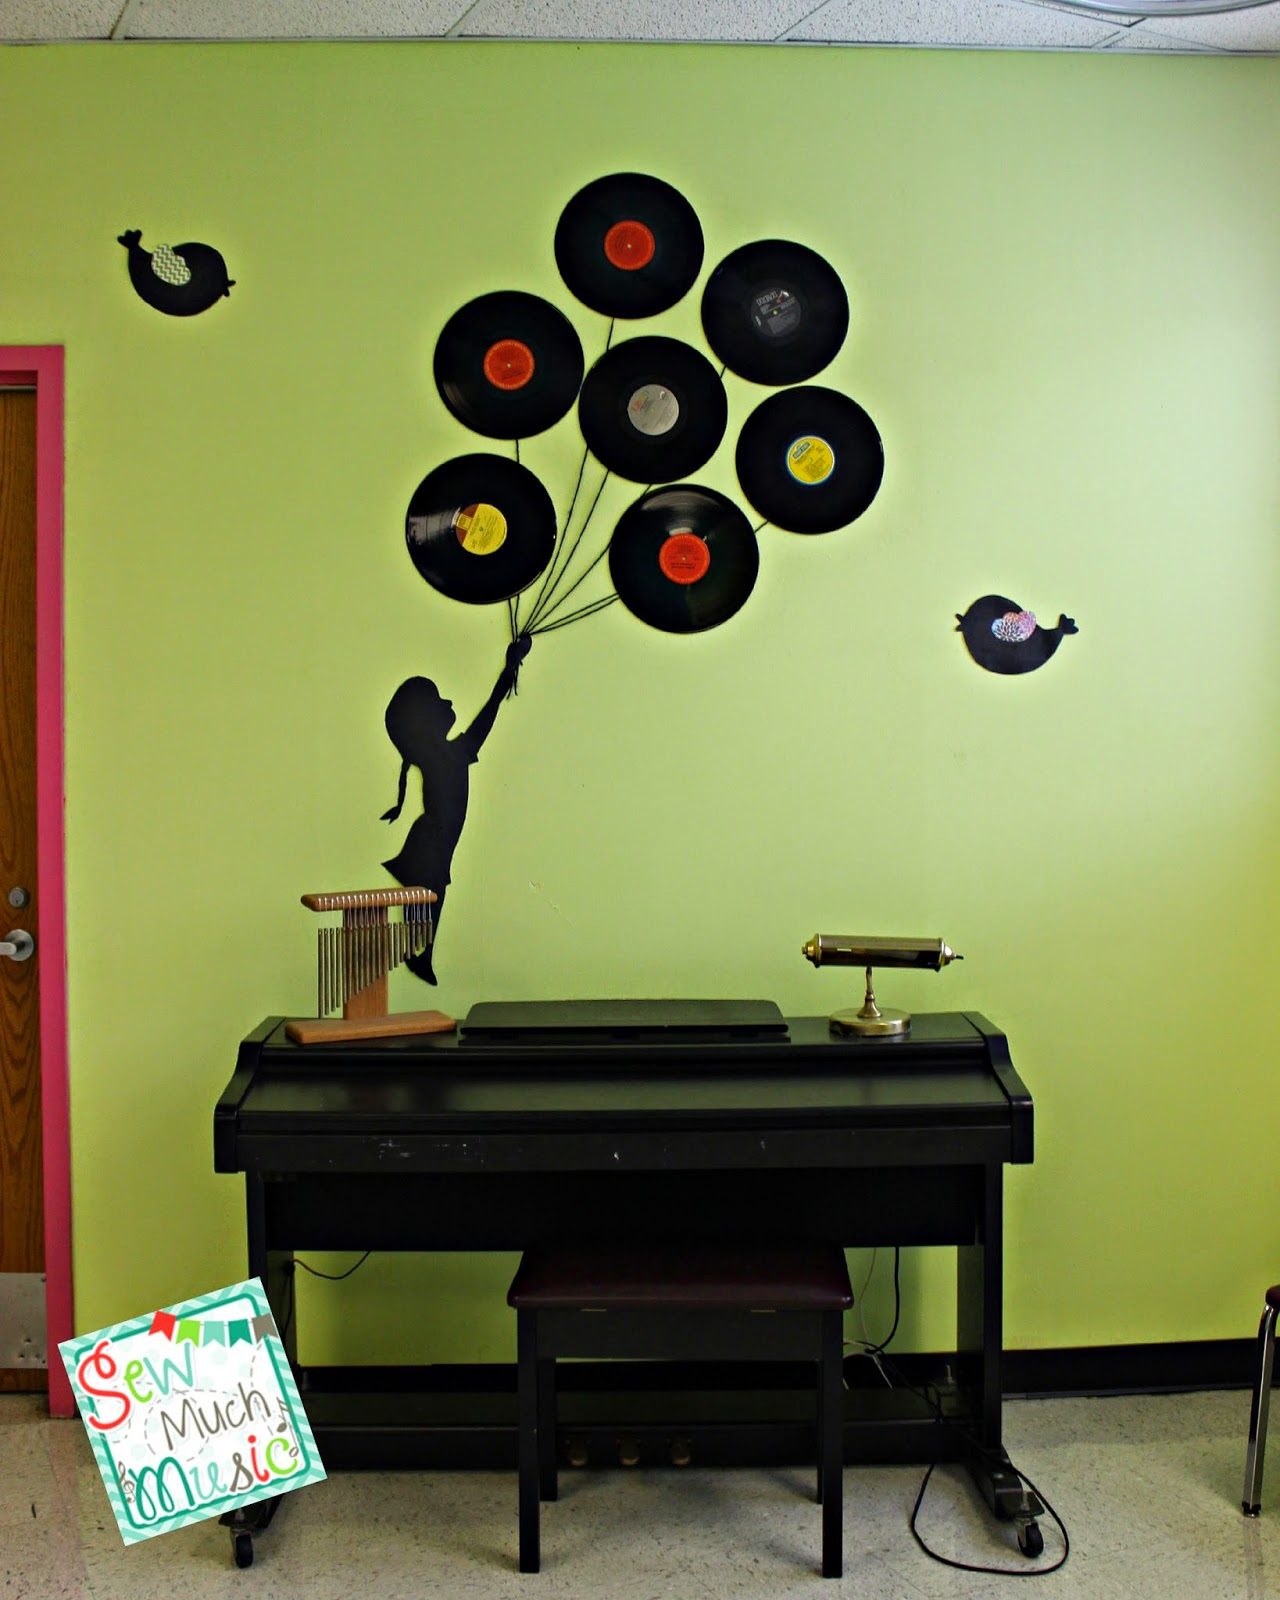 Art Decoration Ideas For Classroom ~ Sew much music my room set up